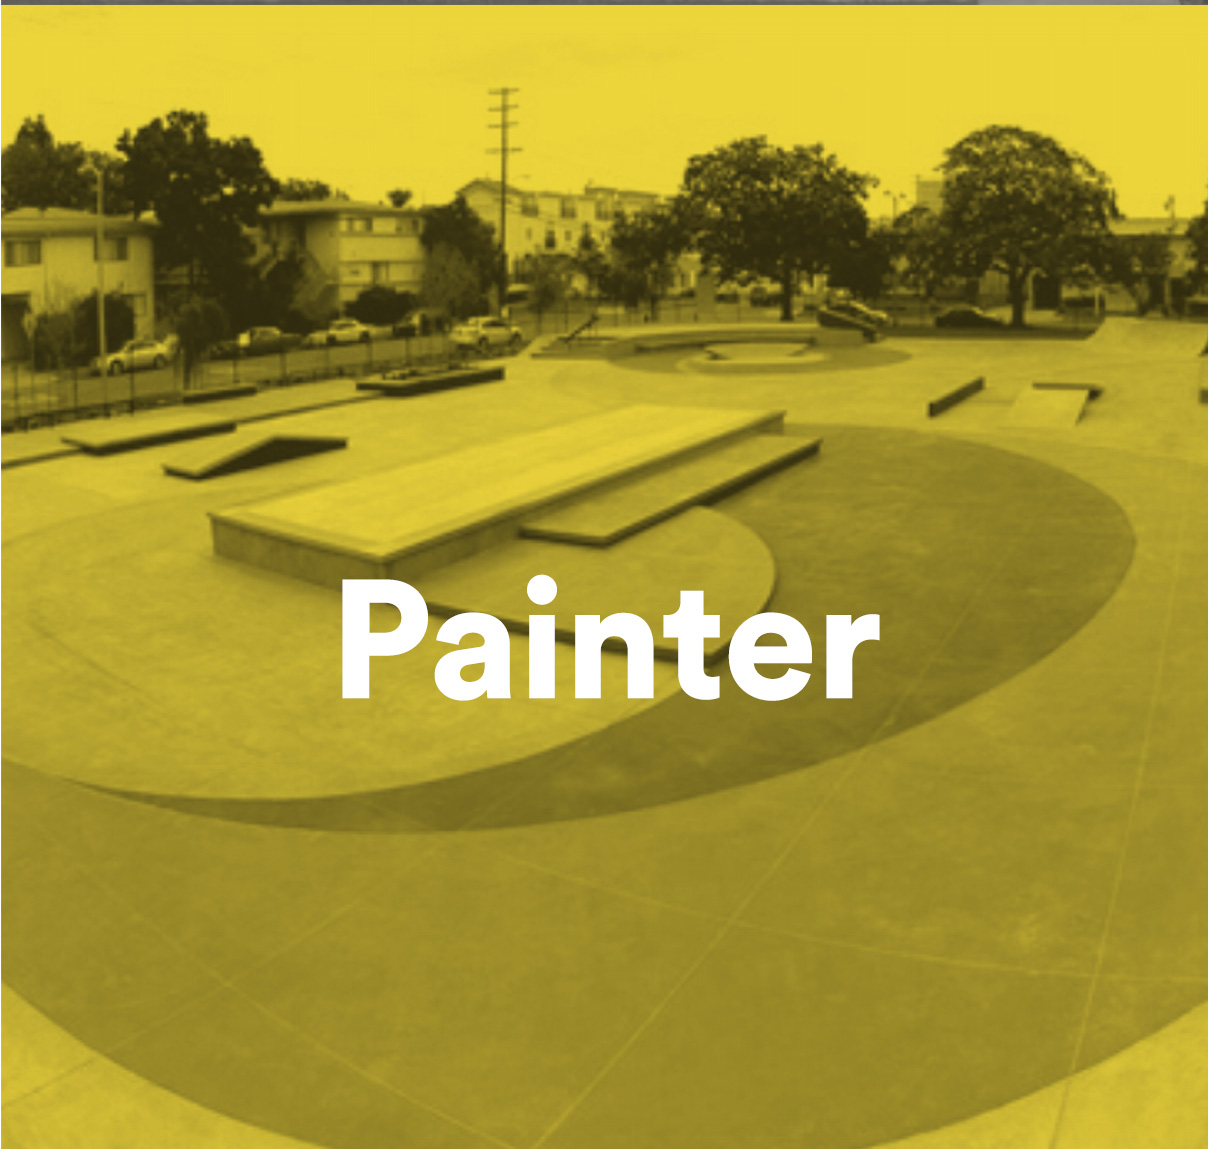 projects_thumbs_painter.jpg